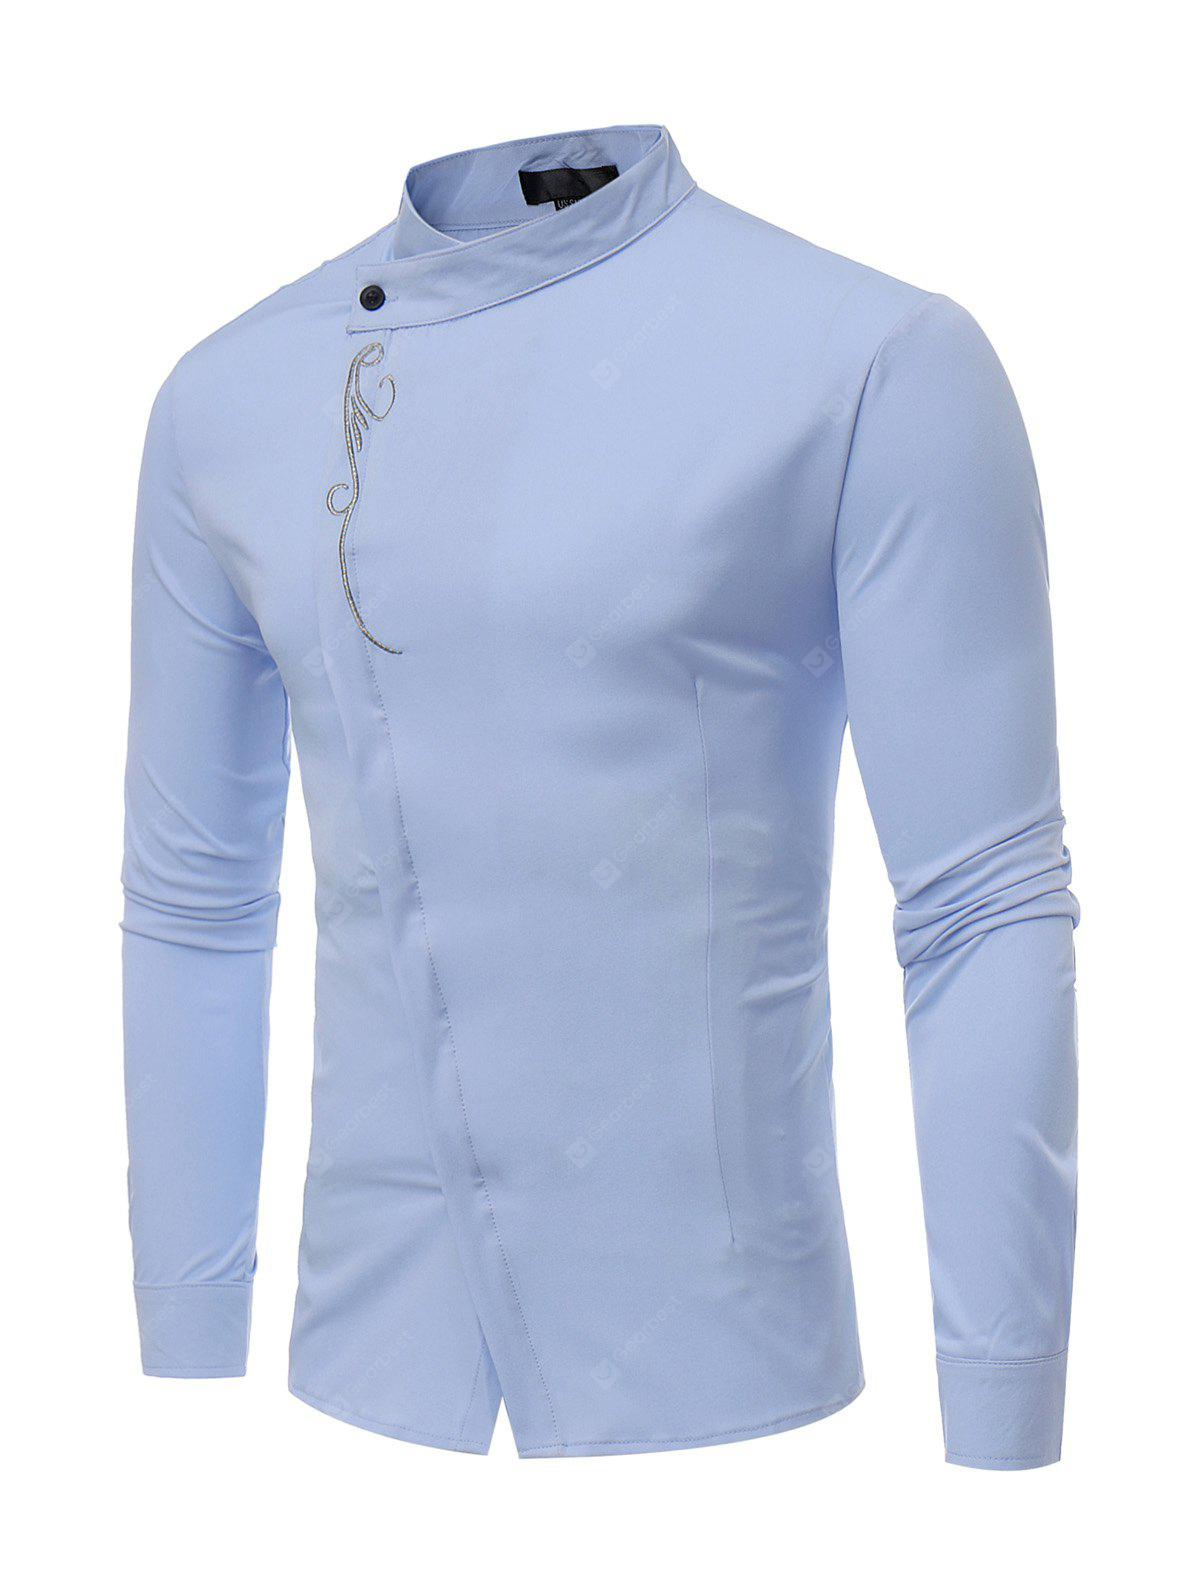 Men Embroidered Stand Collar Long Sleeves Shirt 1169 Free